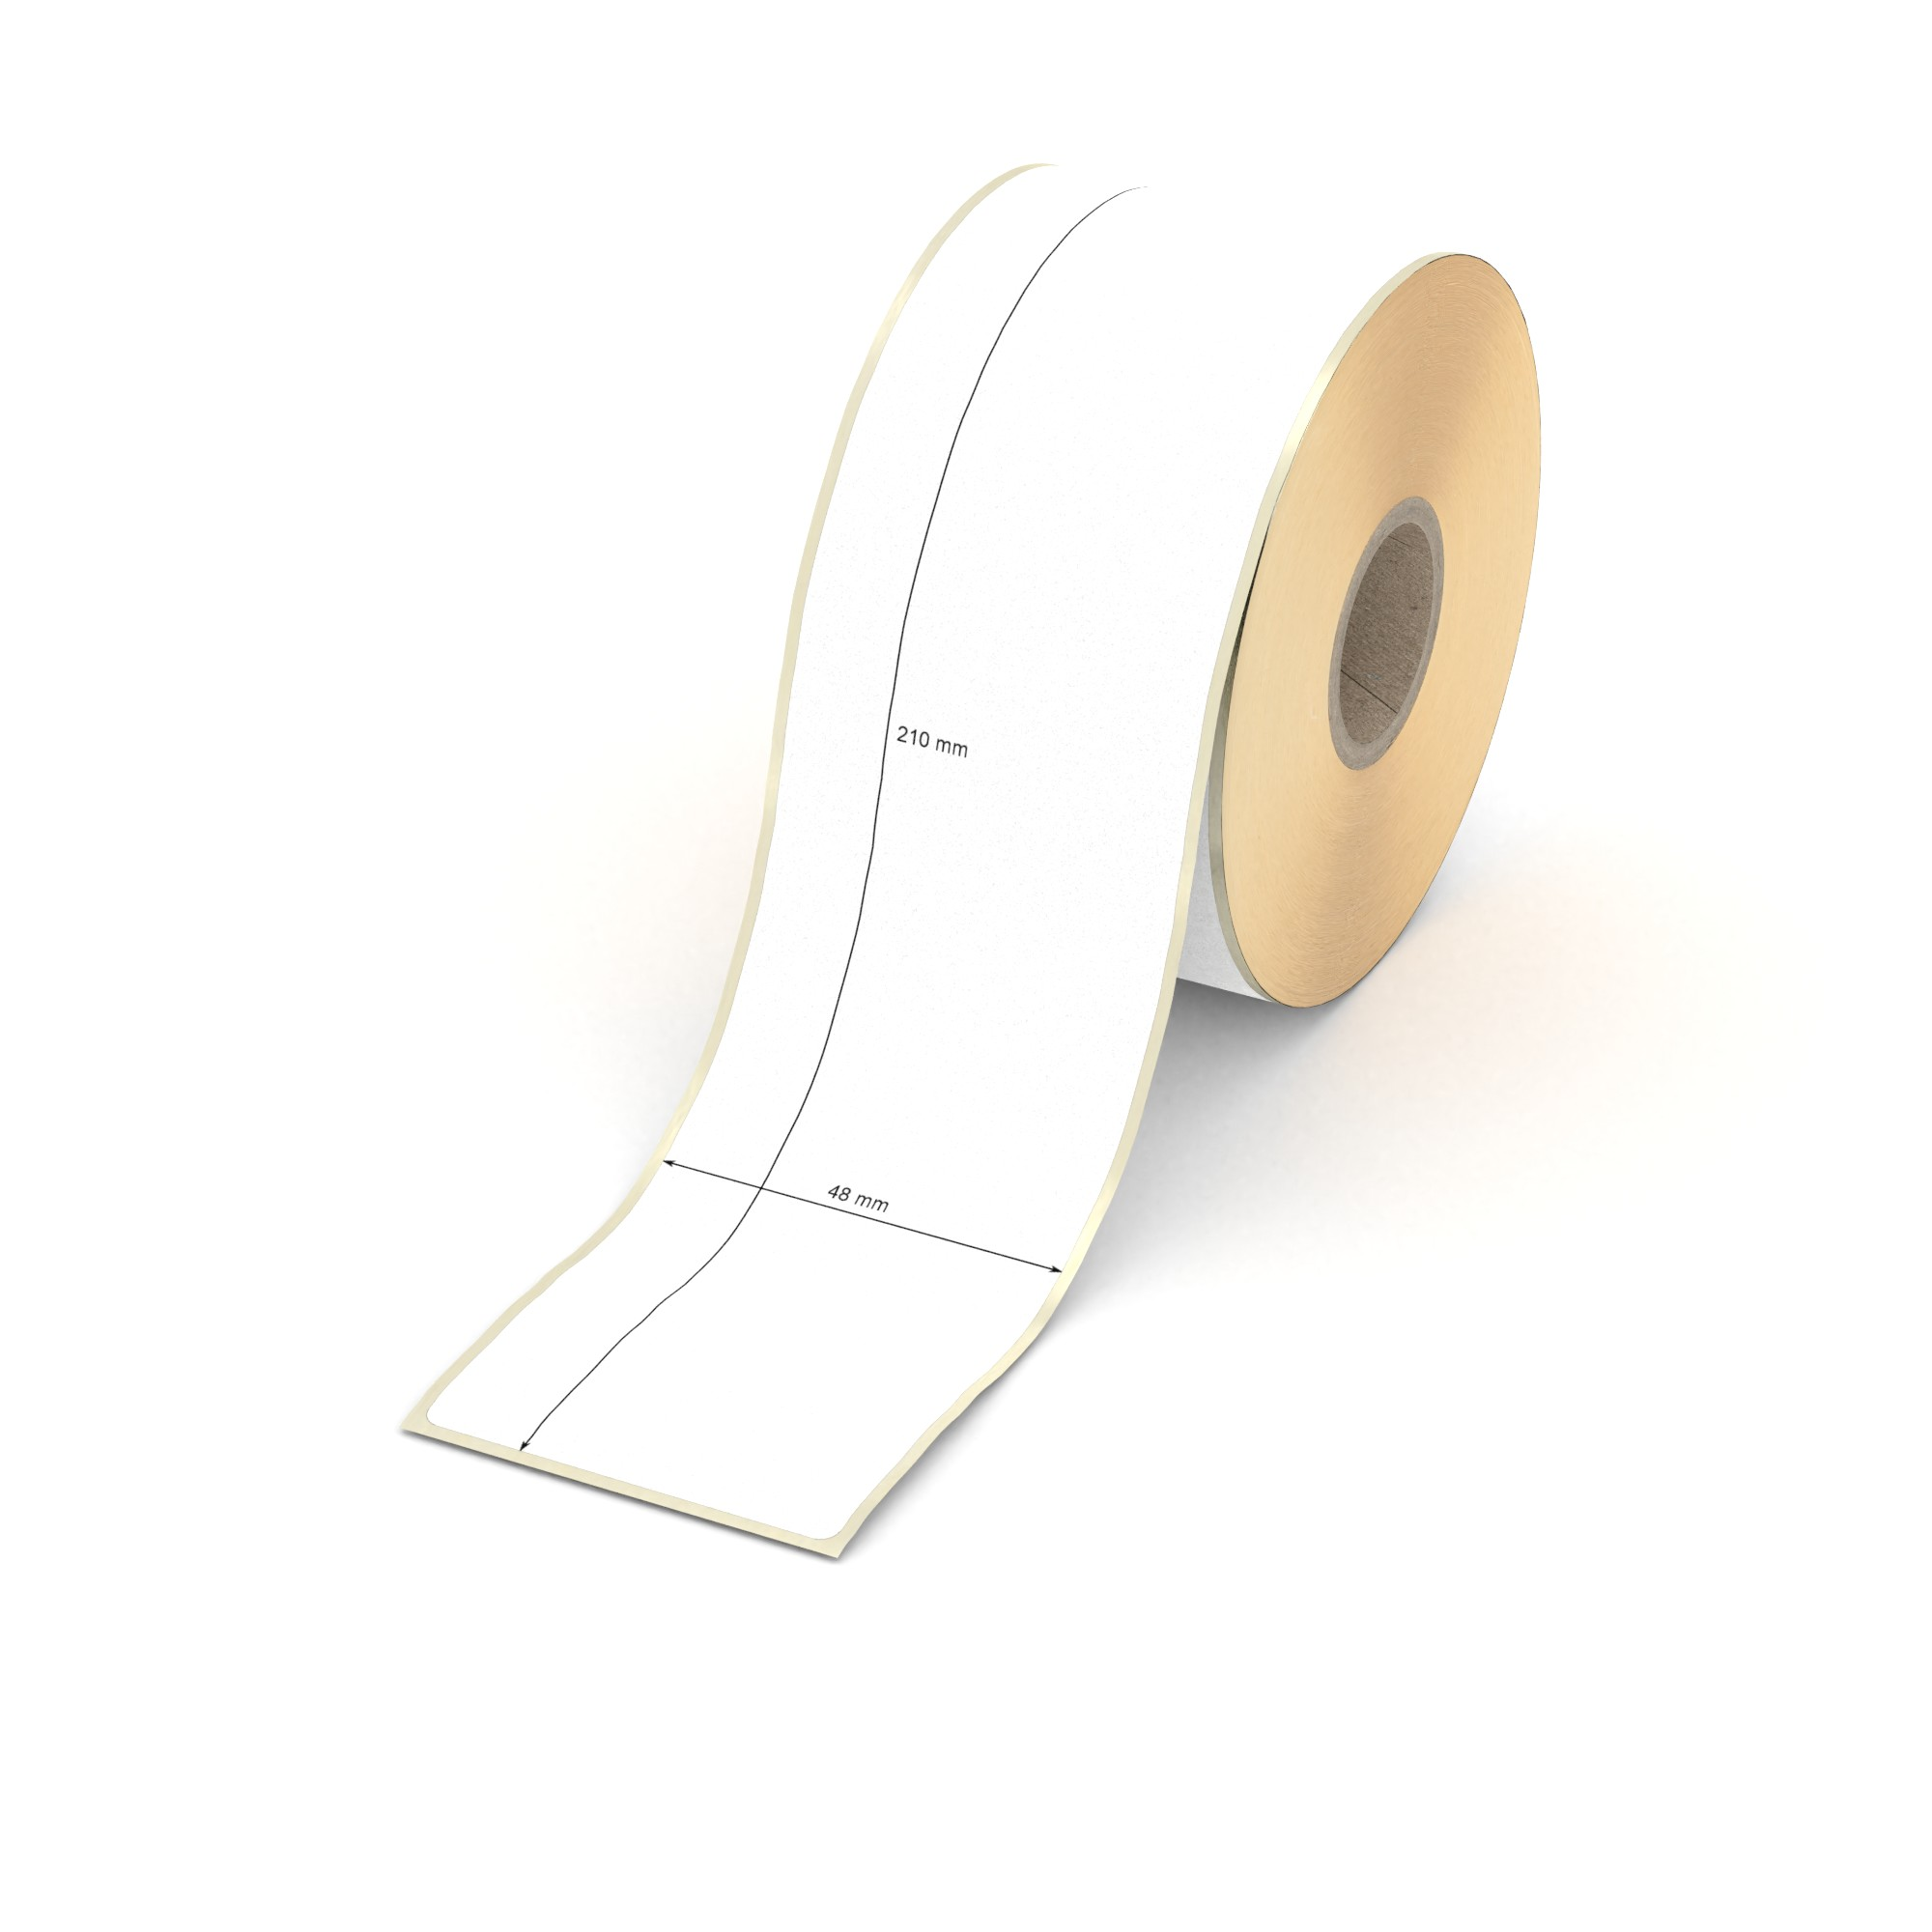 c1e9073026 Etikett 48 x 210 mm - Thermo-Papier - weiß - permanent - 25 mm Hülse ...